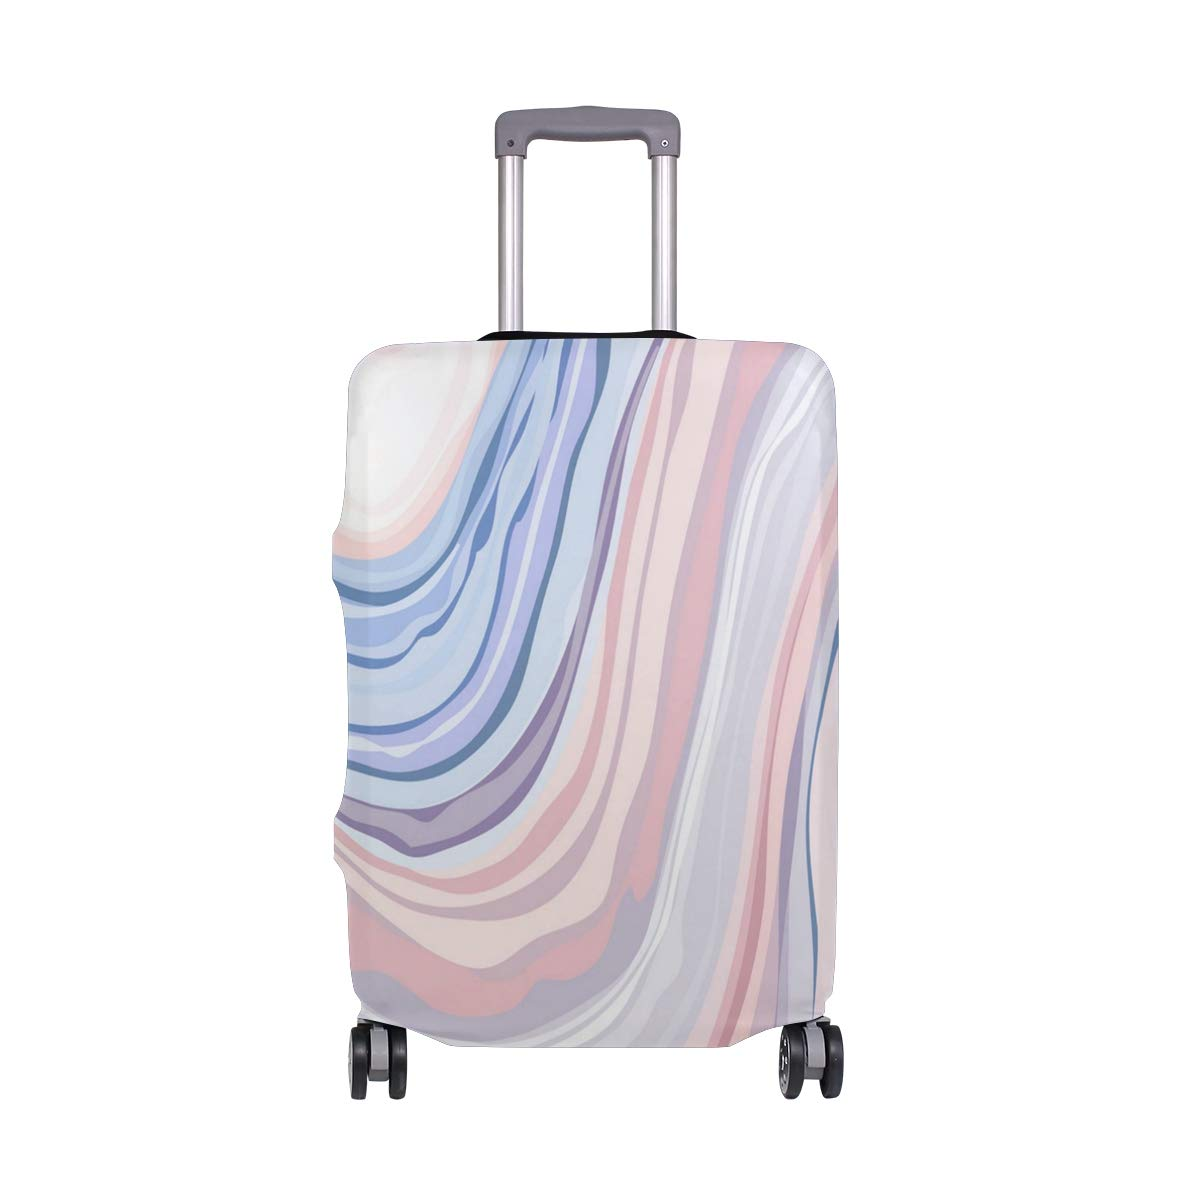 Multicolored Marble Pattern Traveler Lightweight Rotating Luggage Cover Can Carry With You Can Expand Travel Bag Trolley Rolling Luggage Cover